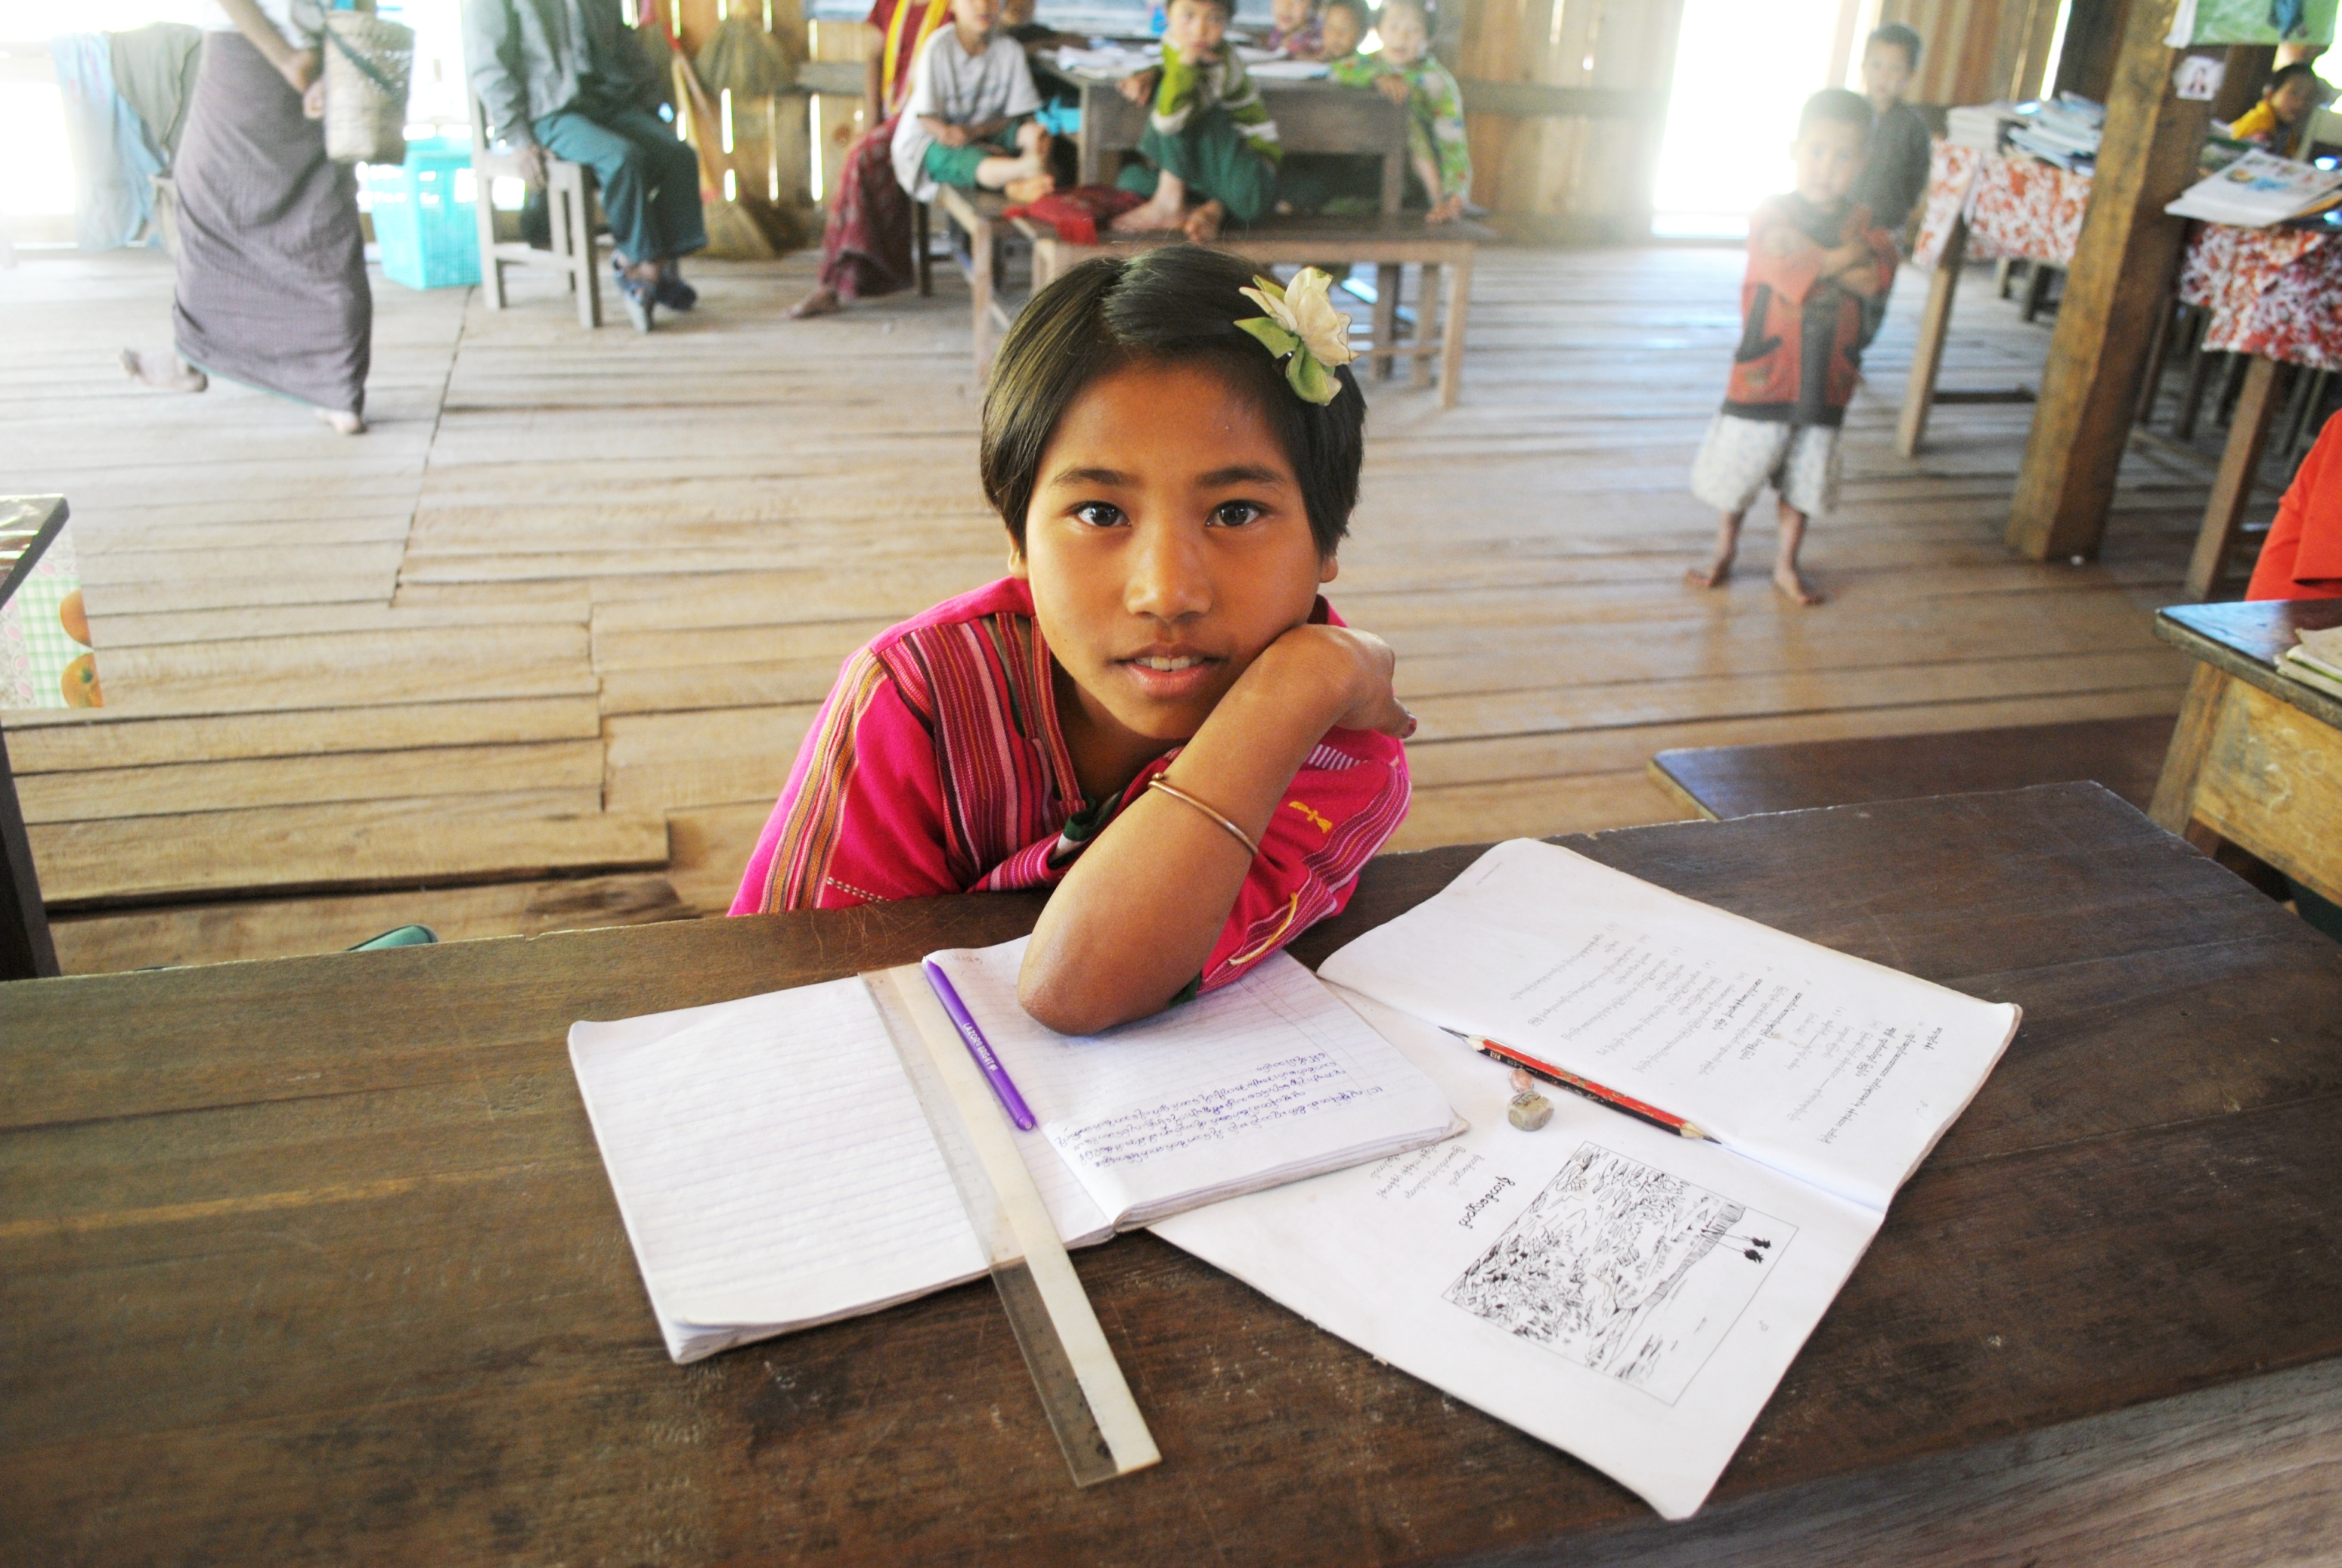 Schoolgirl Pan Kwee, 10, in Chin State's Laung Pan primary school, who said she wants to be a scientist